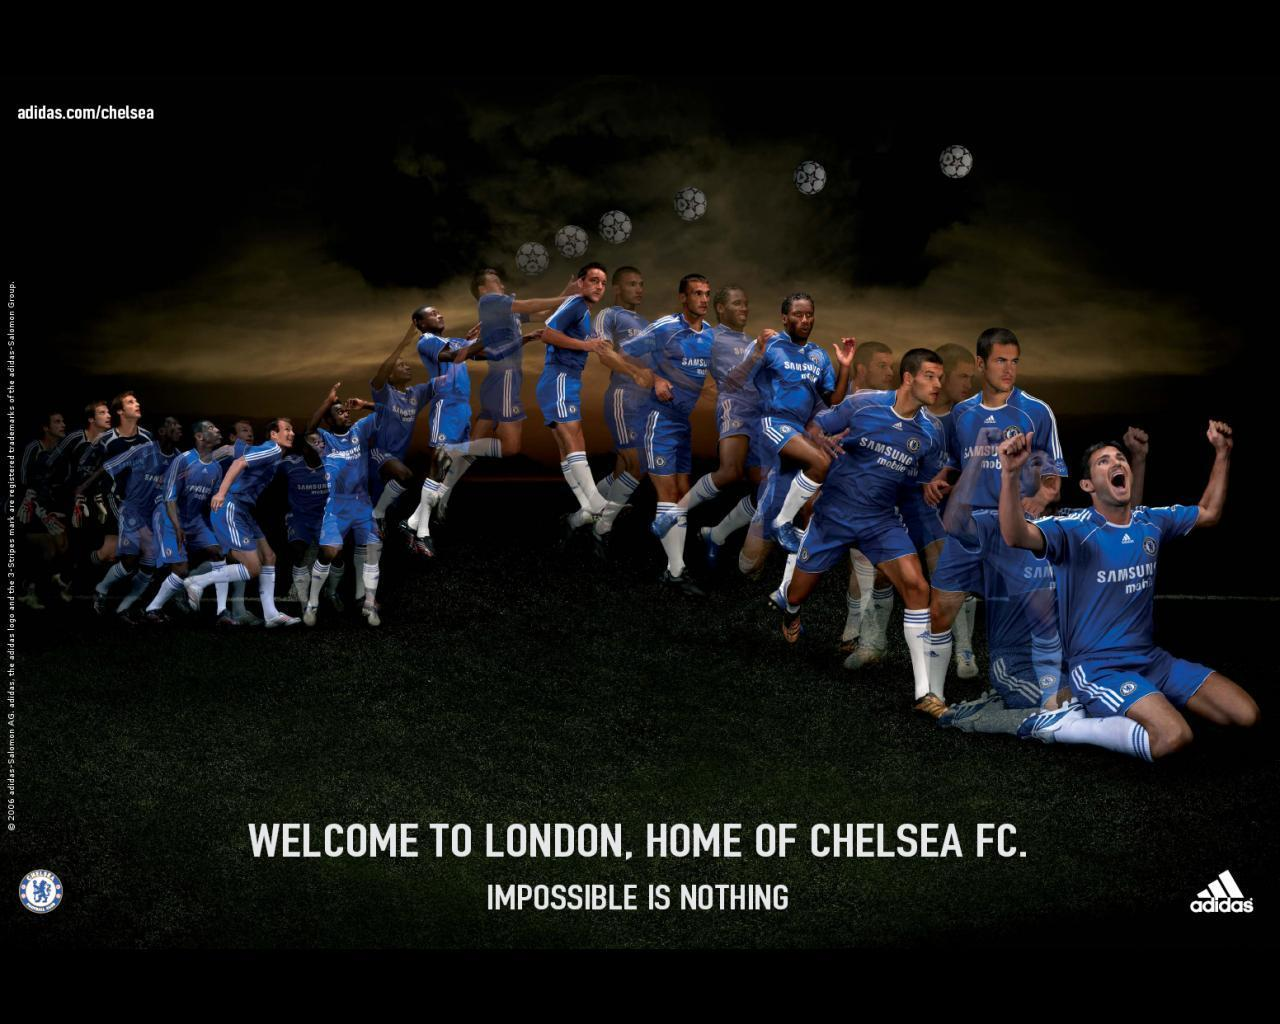 Chelsea F.C. 2017 Wallpapers - Wallpaper Cave